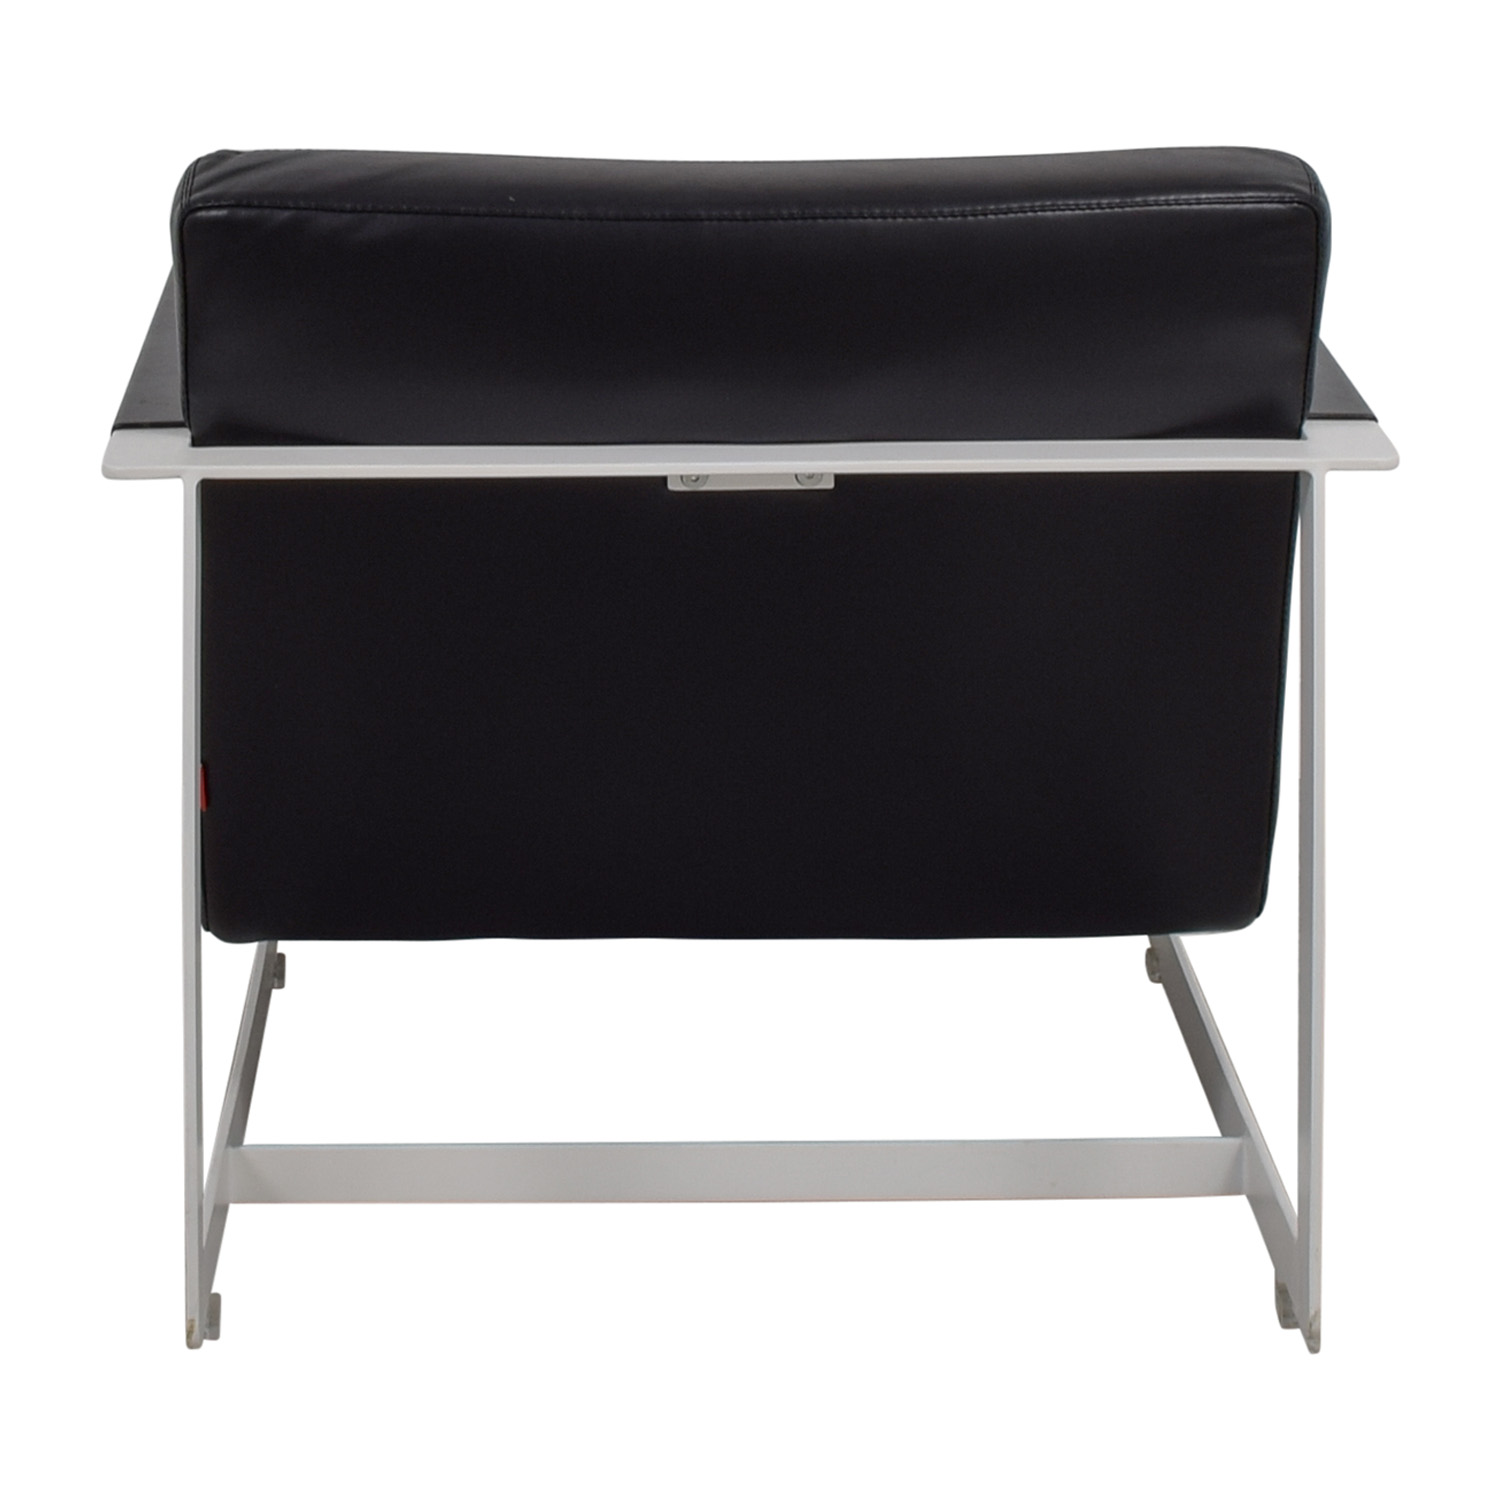 Modloft Modloft Crosby Black and White Lounge Chair Black